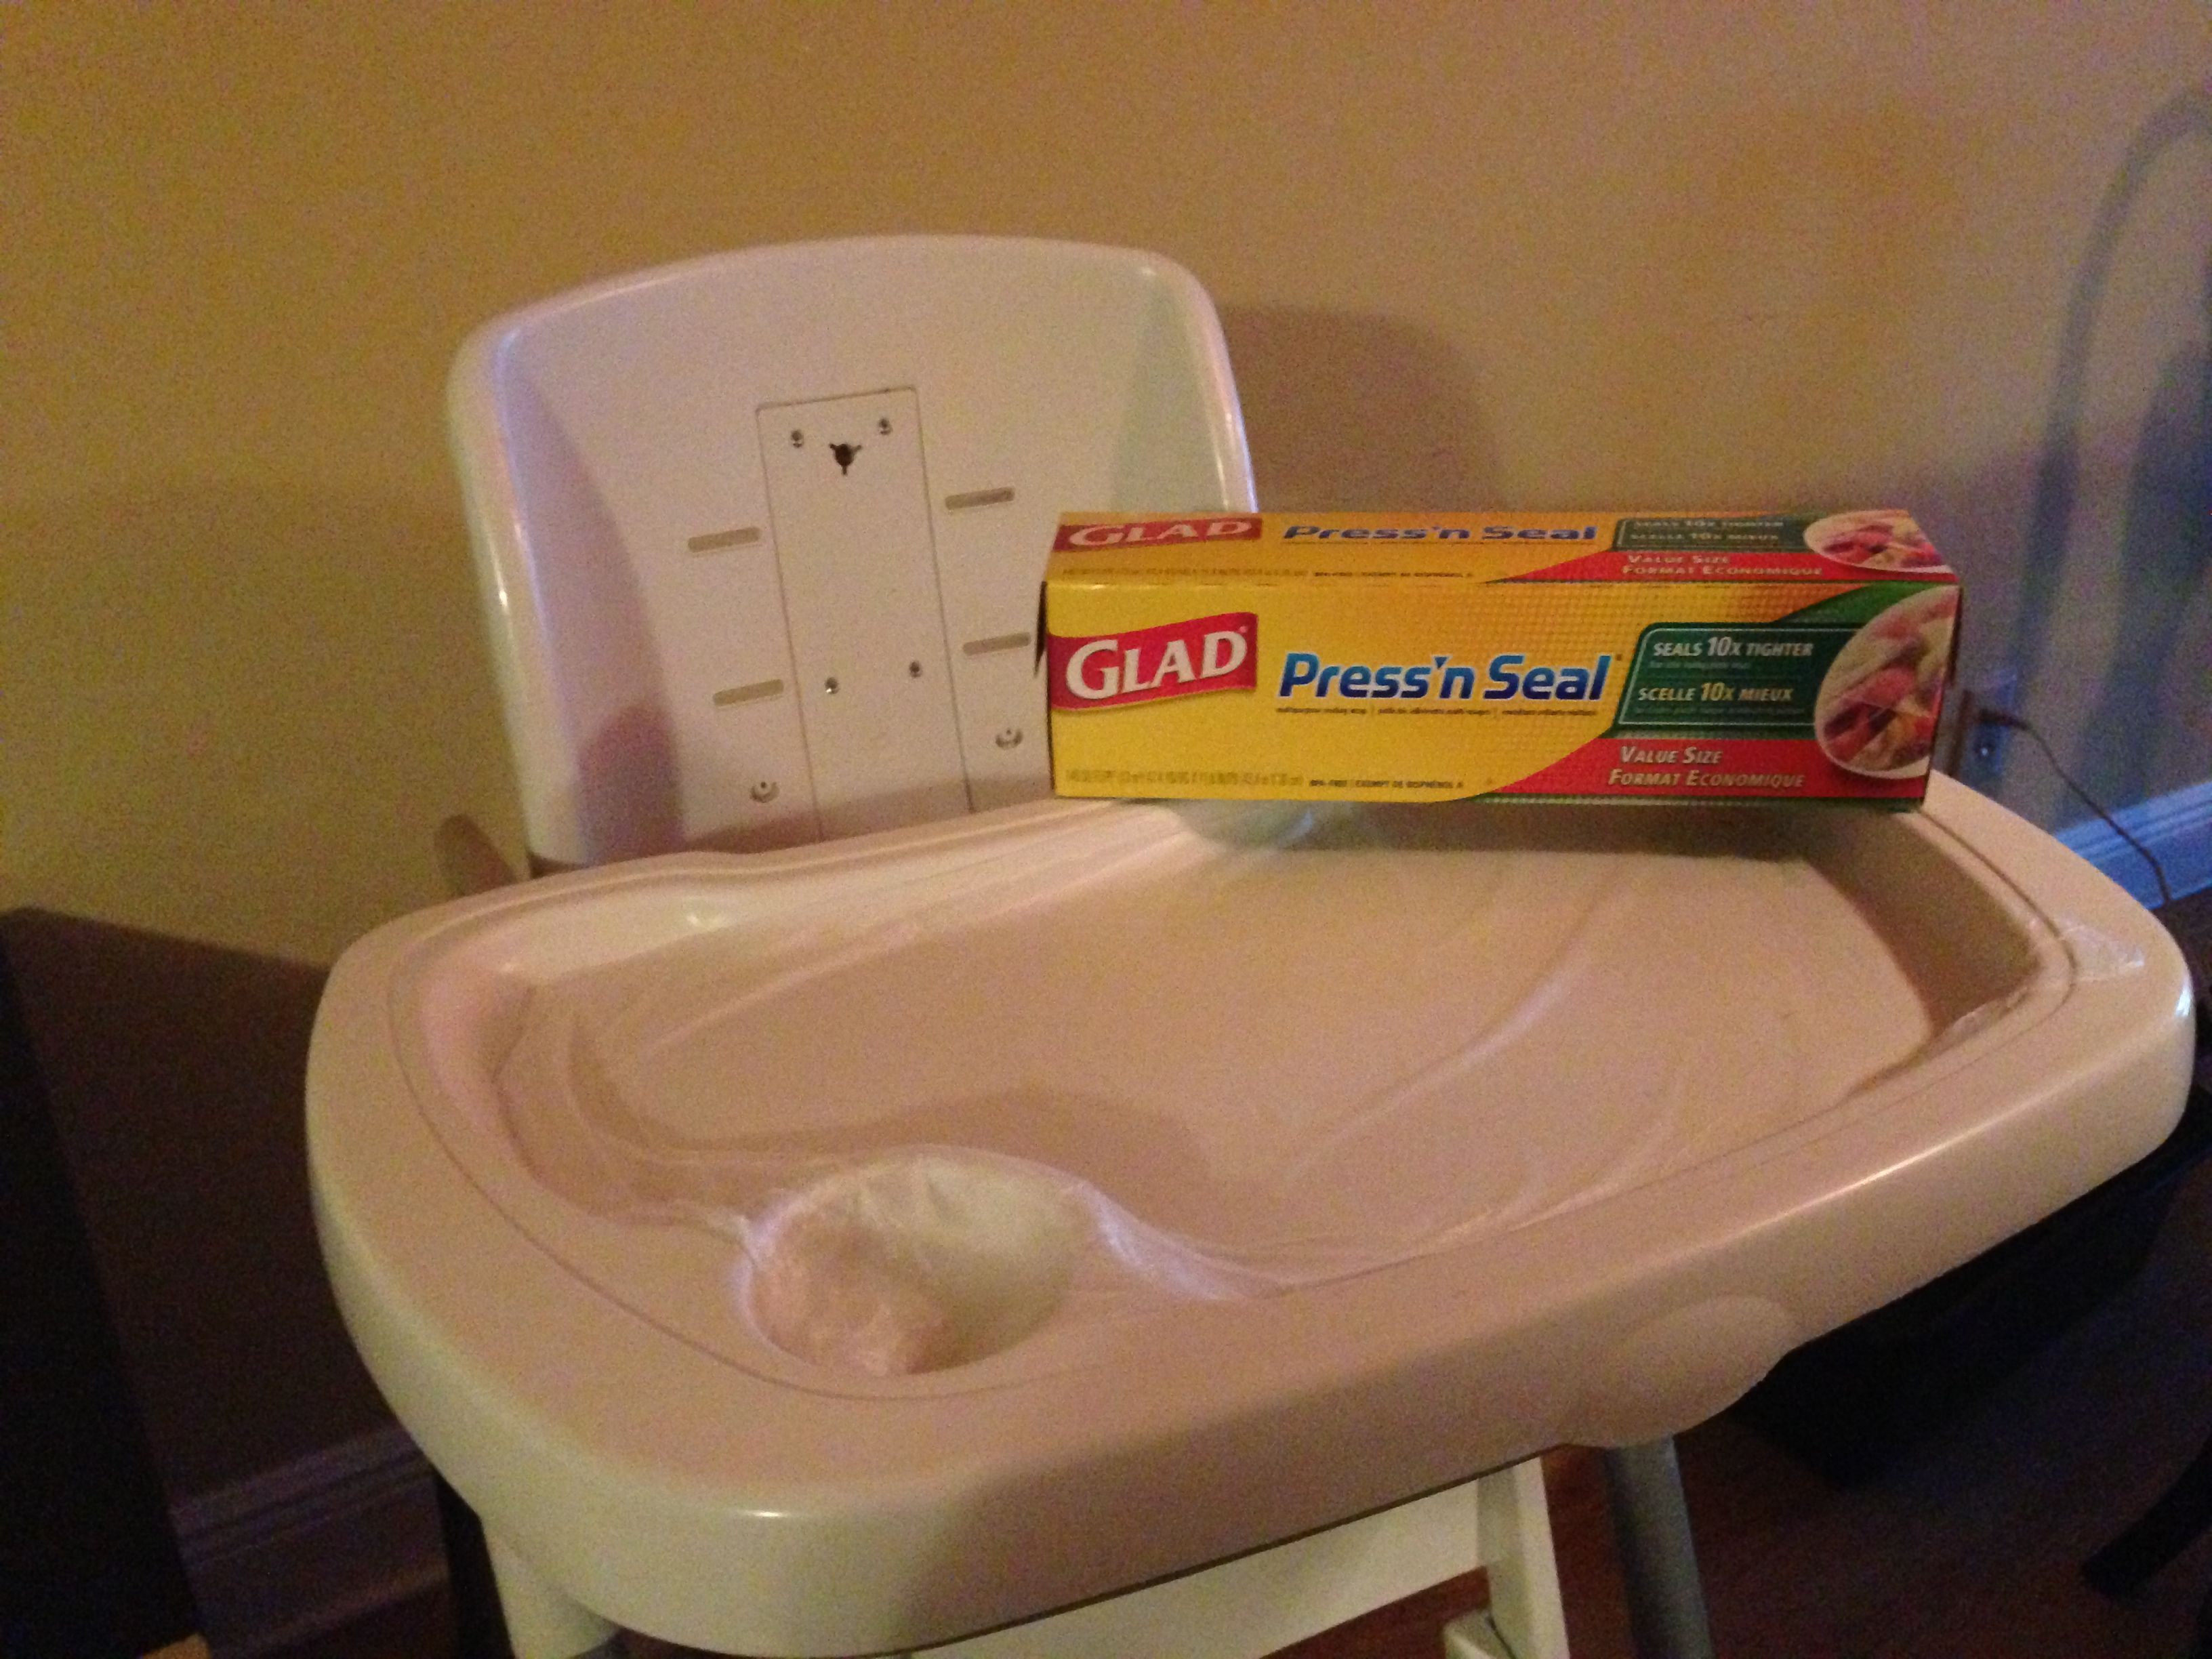 Add Glad Press n Seal to your high chair tray to quickly dispose